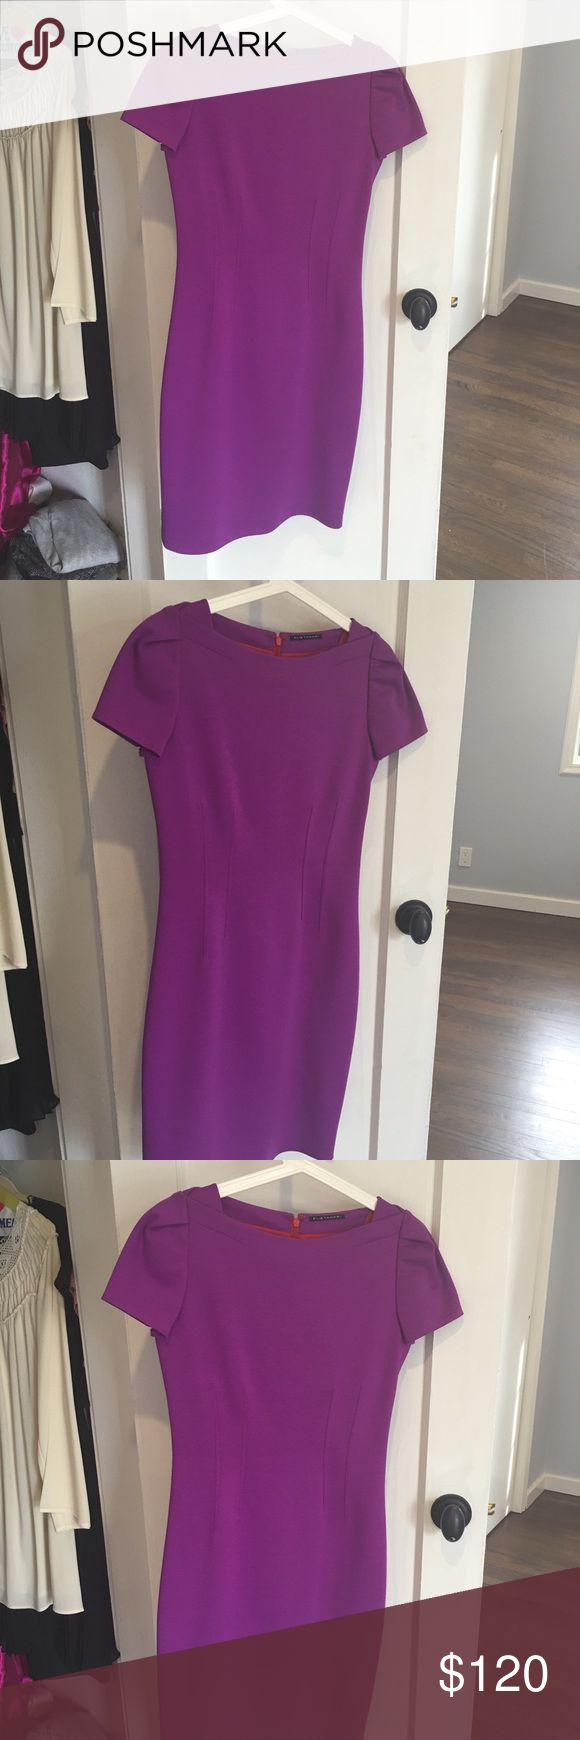 Elie Tahari purple short sleeve midi dress Very elegant purple mini dress for sale!! I love this dress but I'm not skinny enough for it!! Used to fit me before giving birth :( Very flattering fit. Falls below the knee. Perfect for a wedding, engagement party, bridal shower, baby shower, or any other party that you want to dress up for! Fun color dress will make you stand out in the crowd while still looking modest and elegant. Worn only once or twice. Elie Tahari Dresses Midi